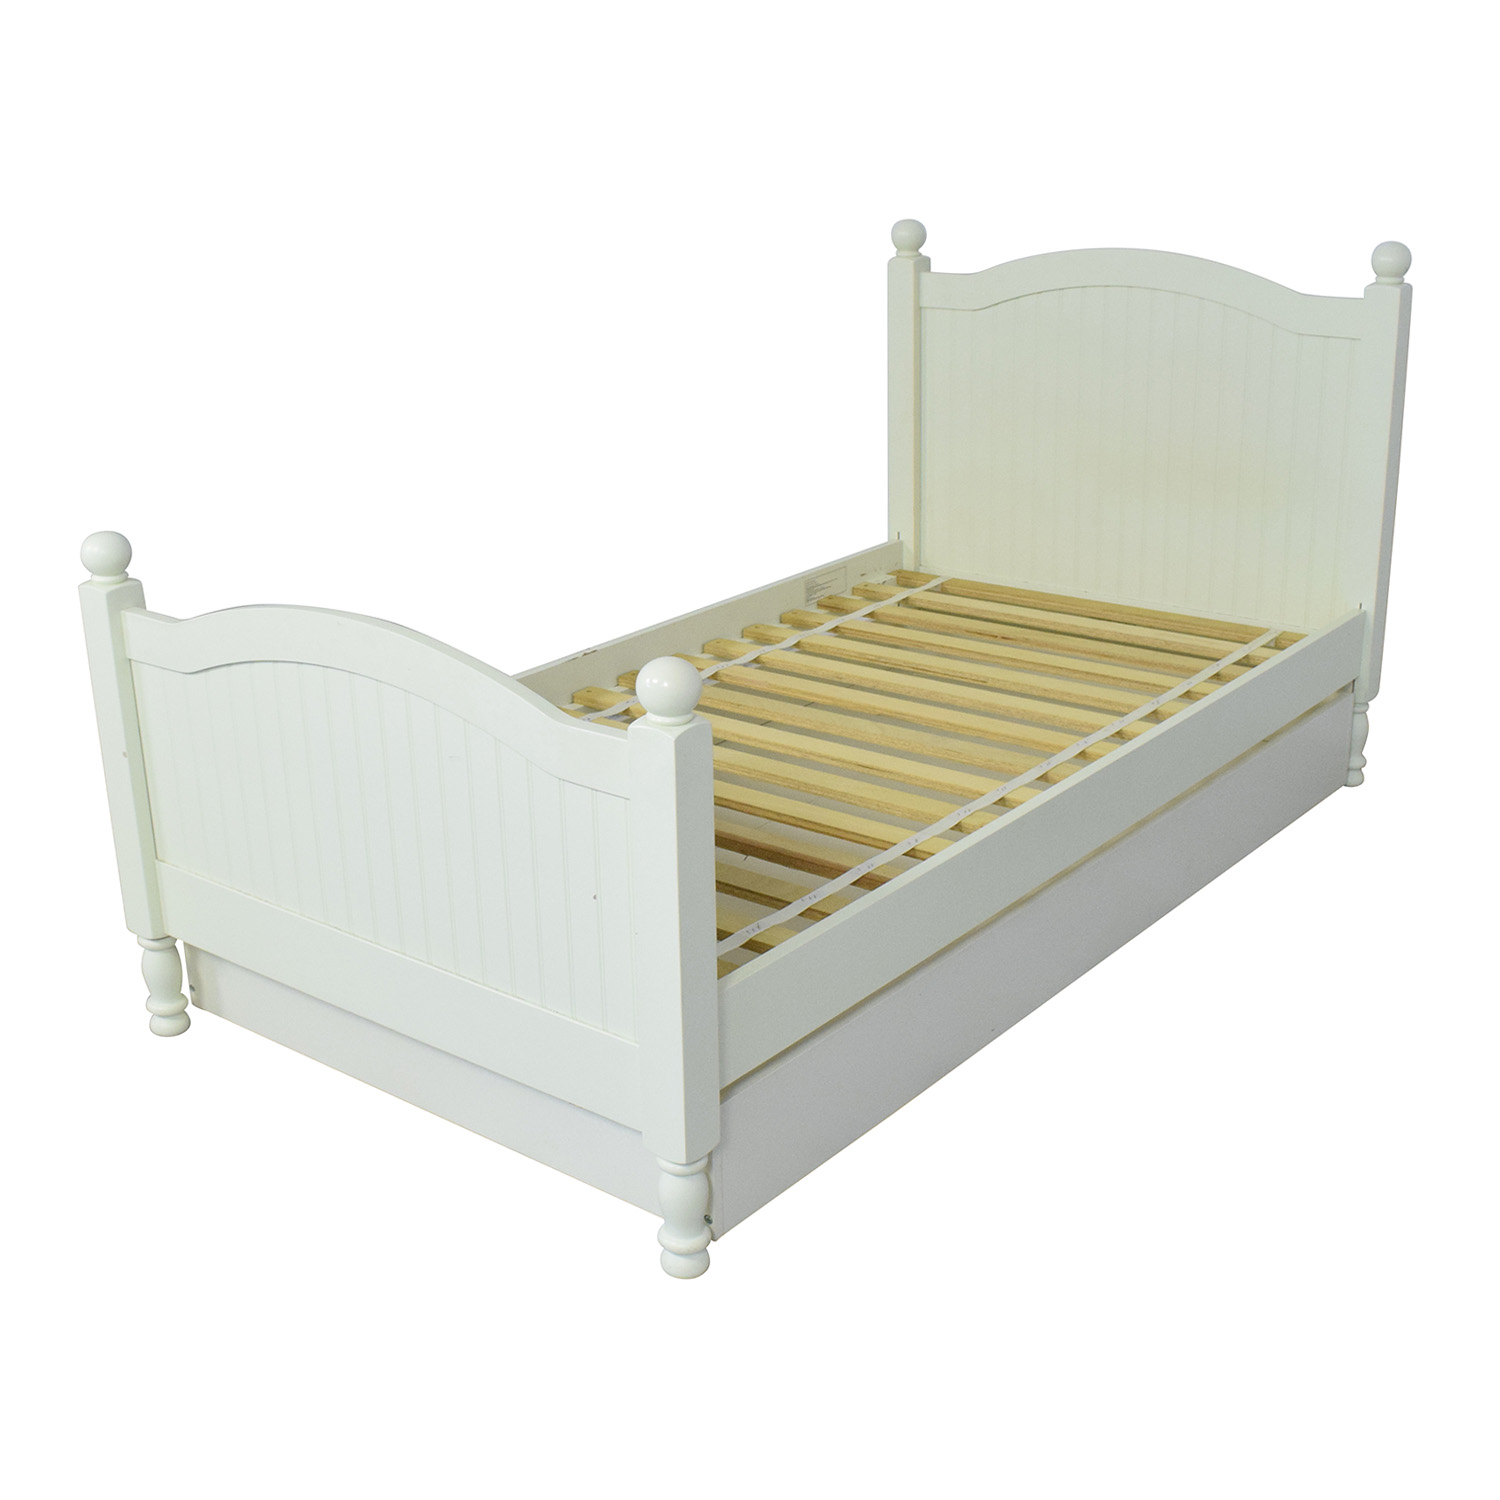 Pottery Barn Kids Pottery Barn Trundle Twin Bed coupon